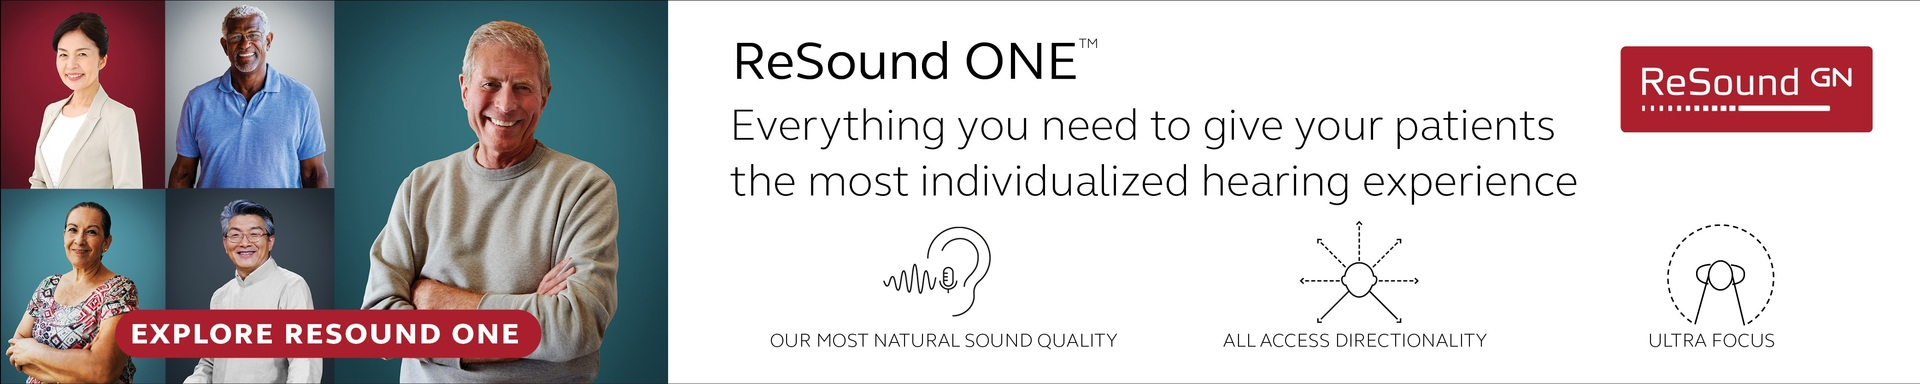 ReSound ONE - Explore - September 2020